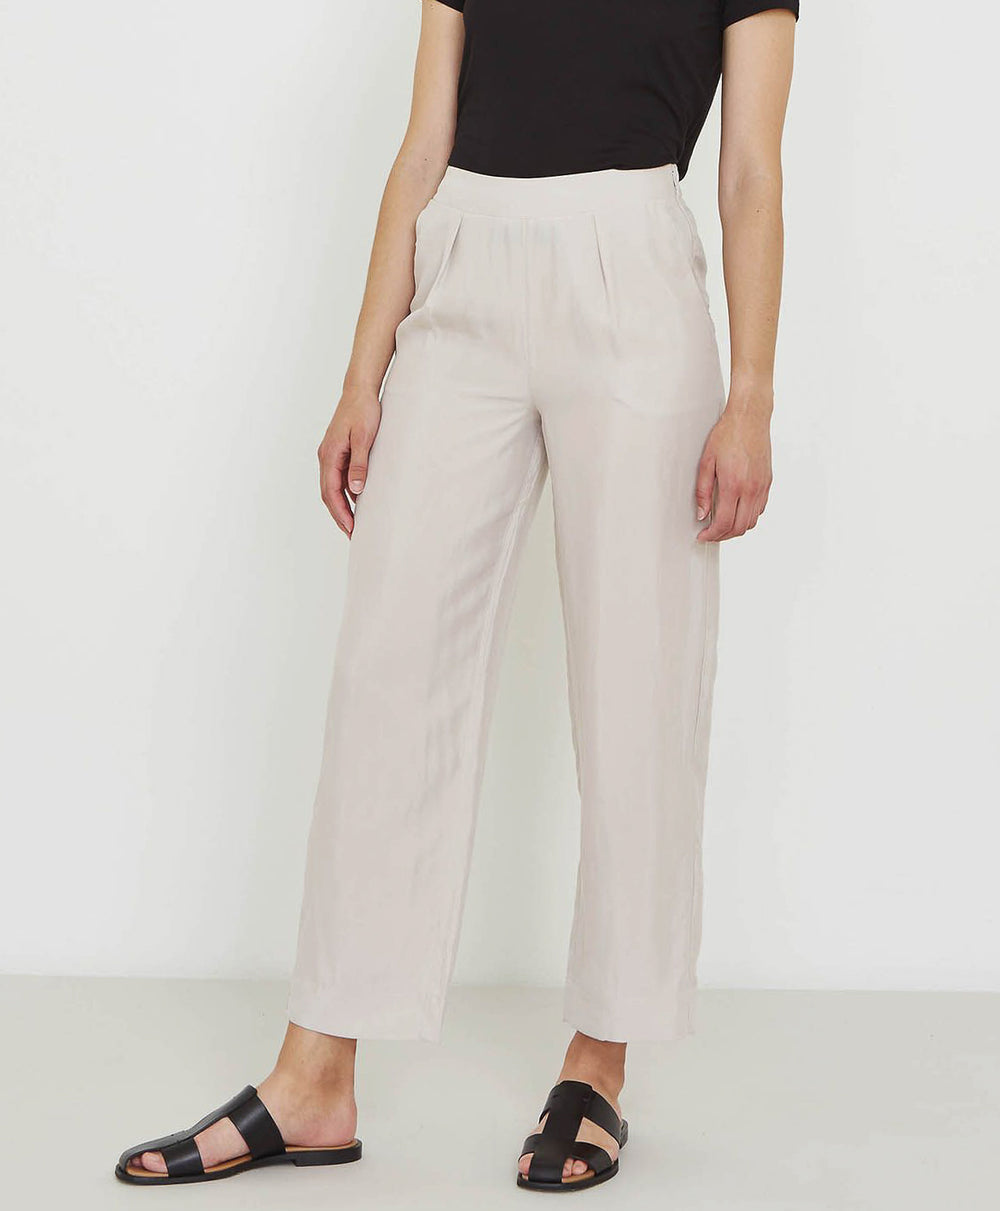 5 PREVIEW ROCHELLE TROUSER